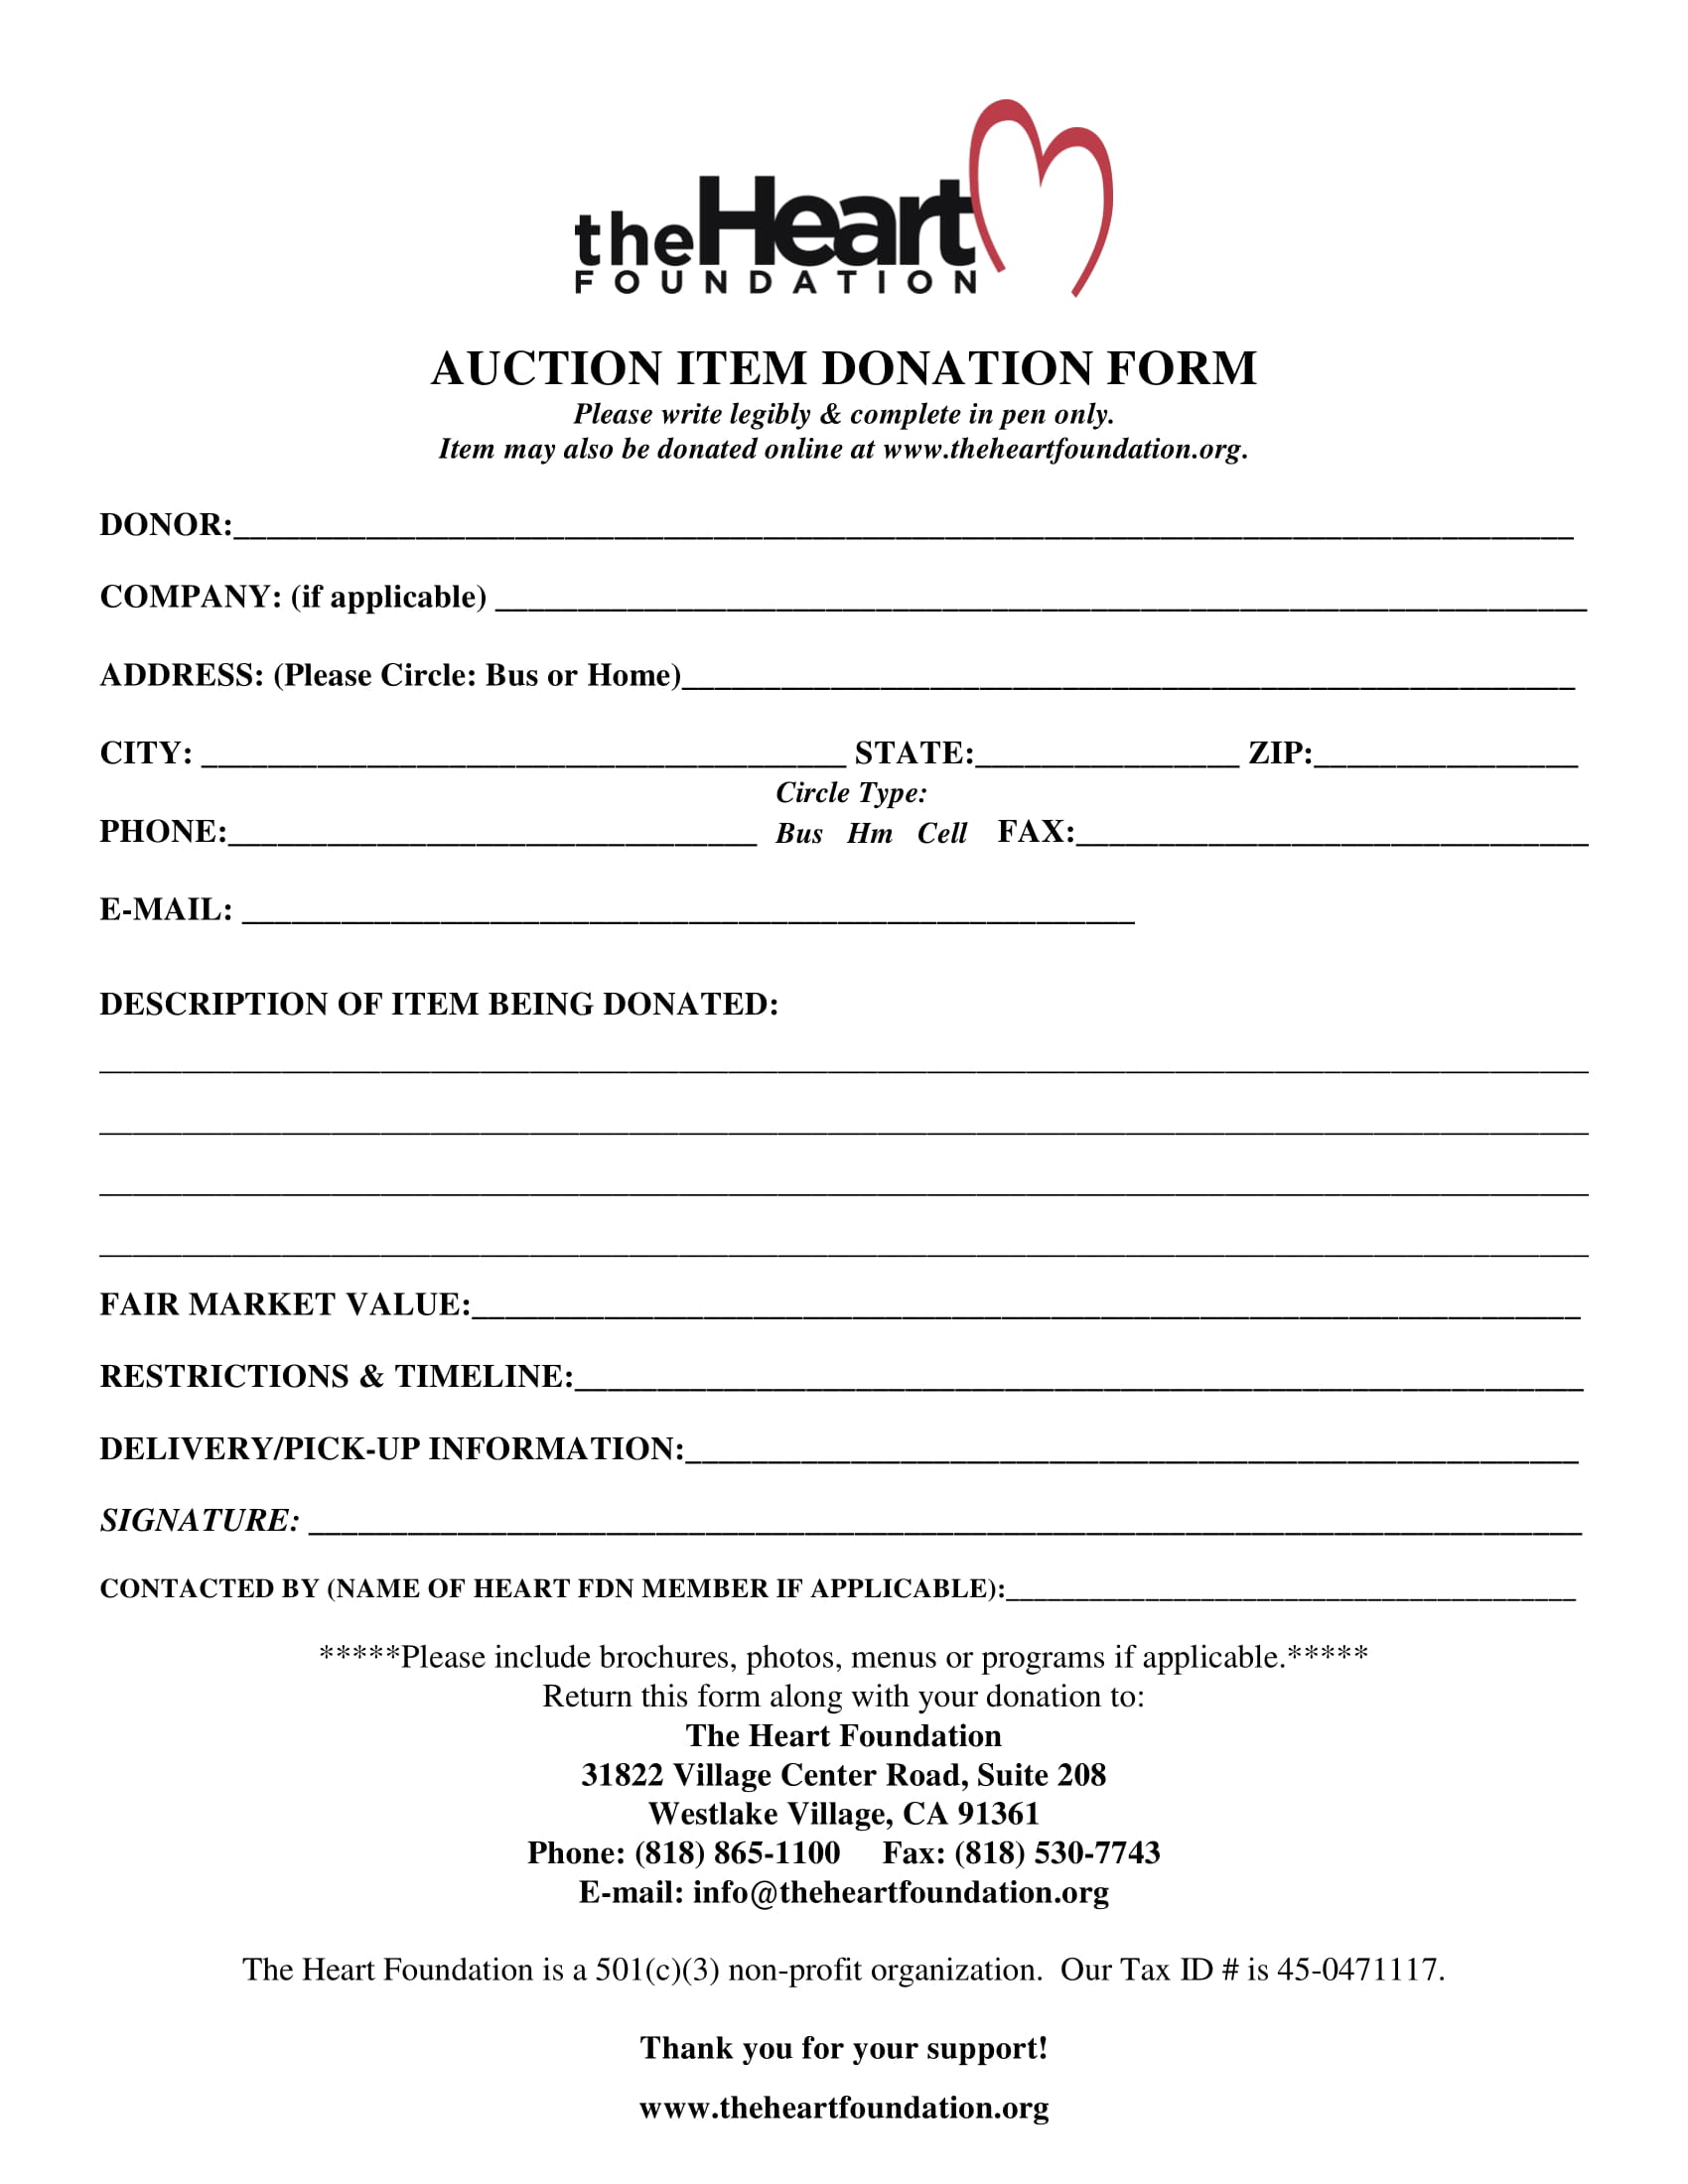 donor forms